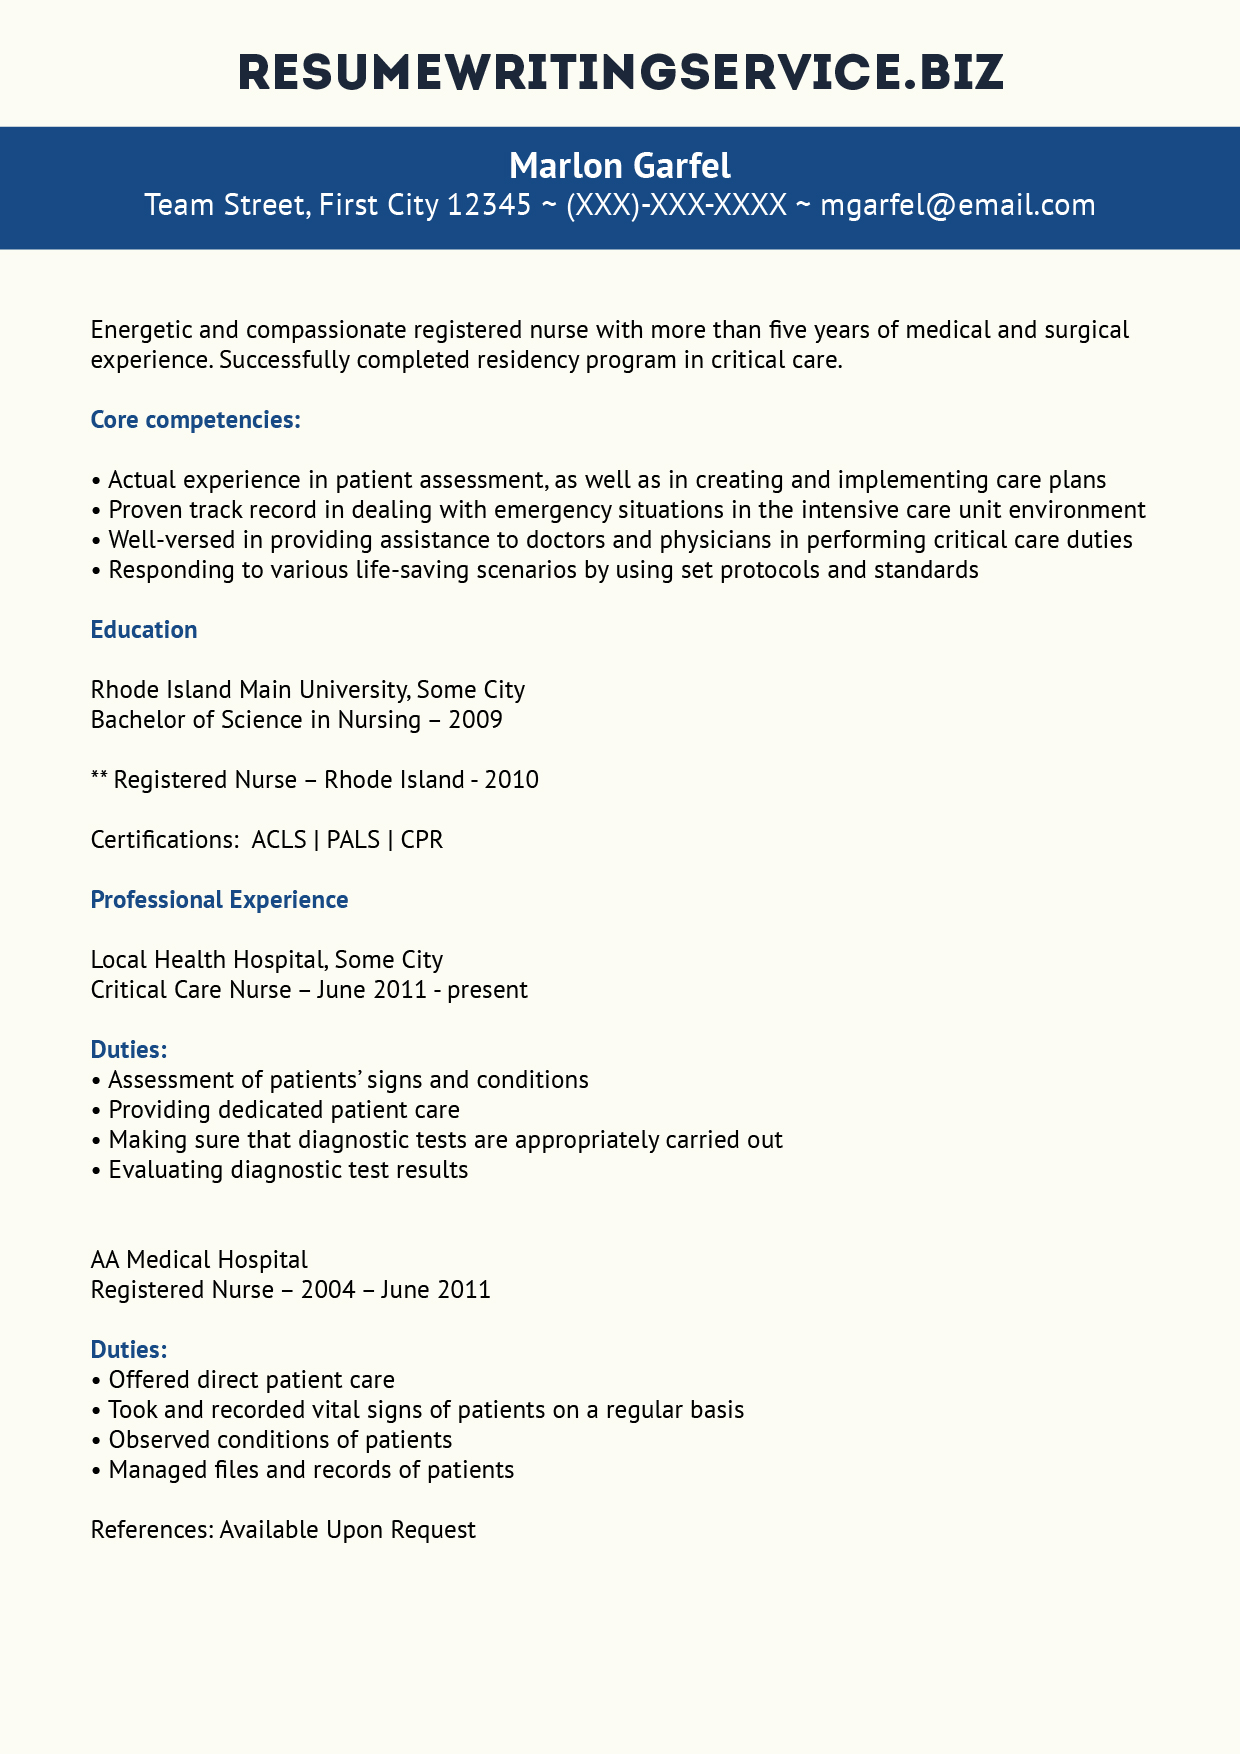 Quality Critical Care Nurse Resume